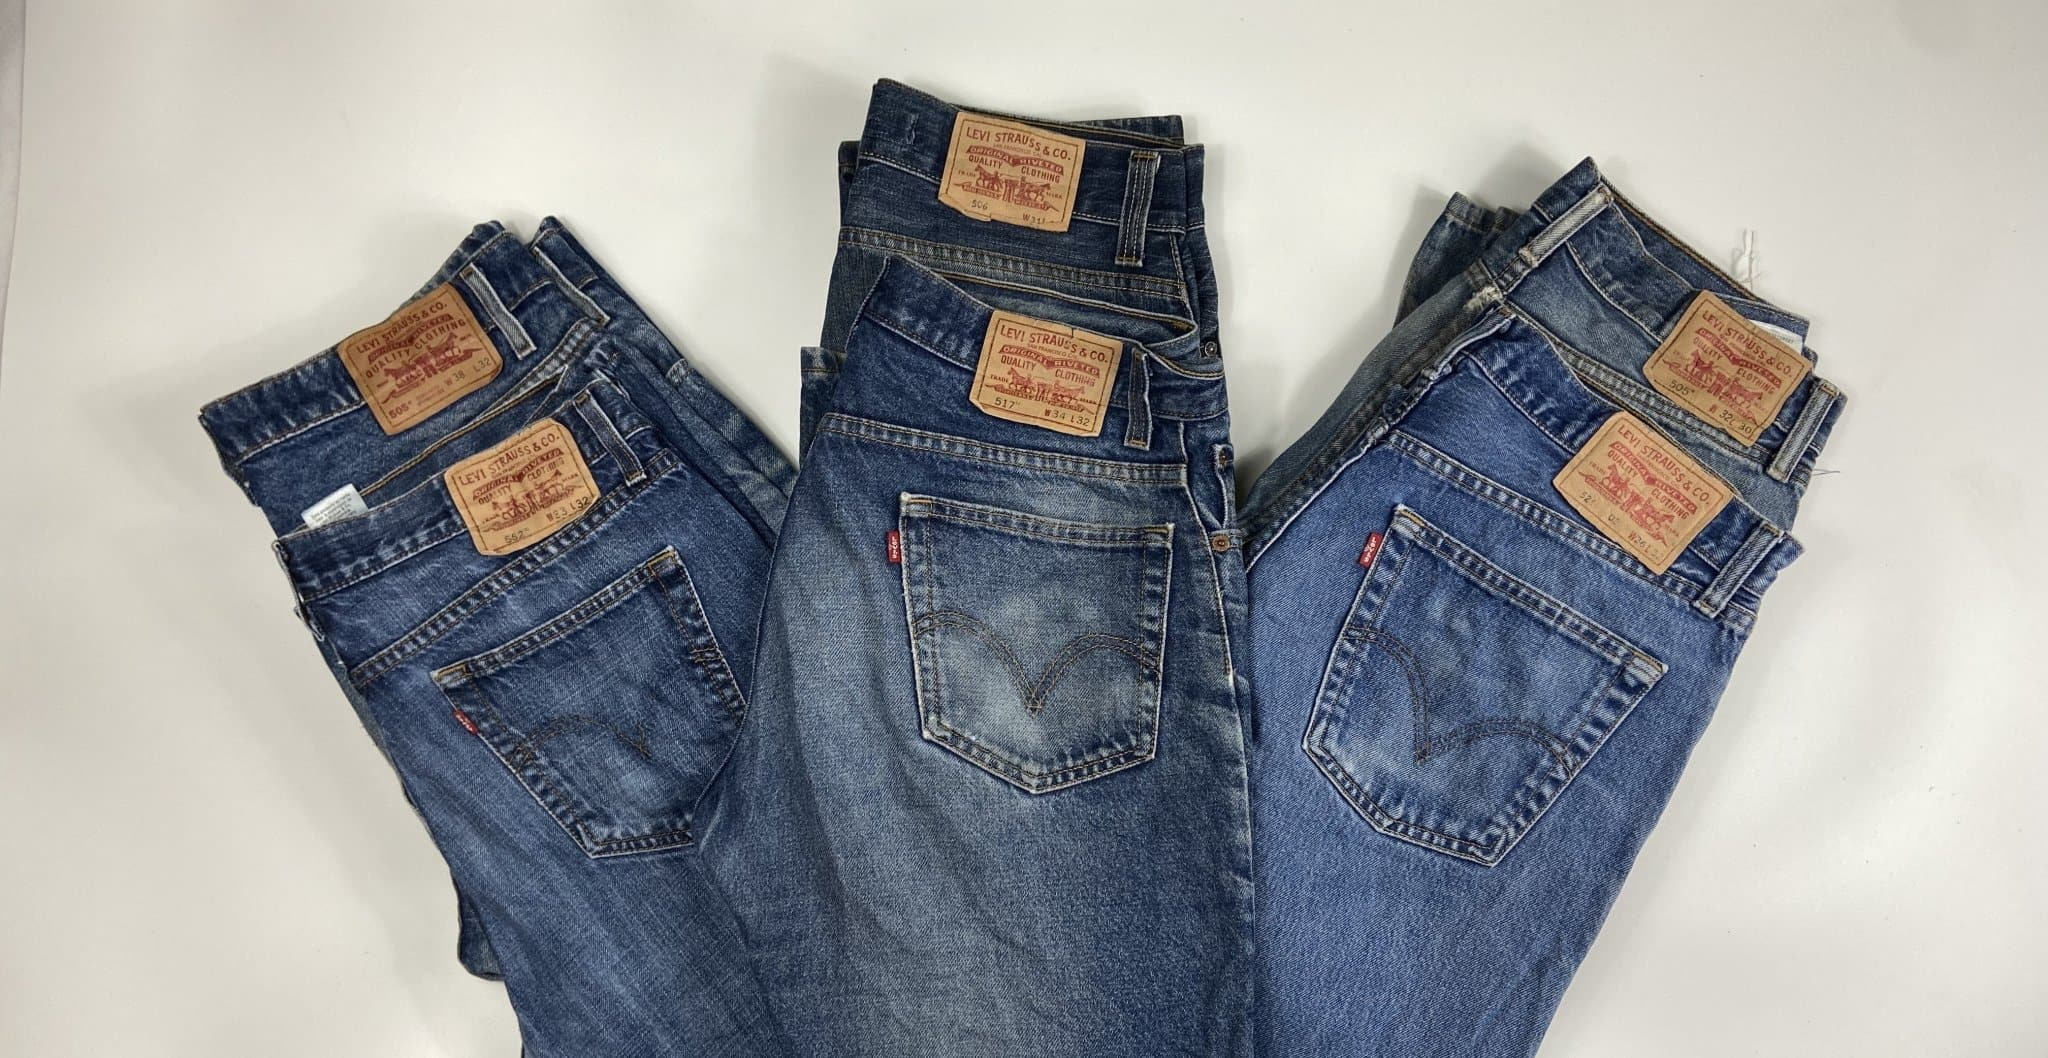 Vintage Levi's 521 Classic Blue Zip Fly Jeans W33 L32 (M15) - Discounted Deals UK